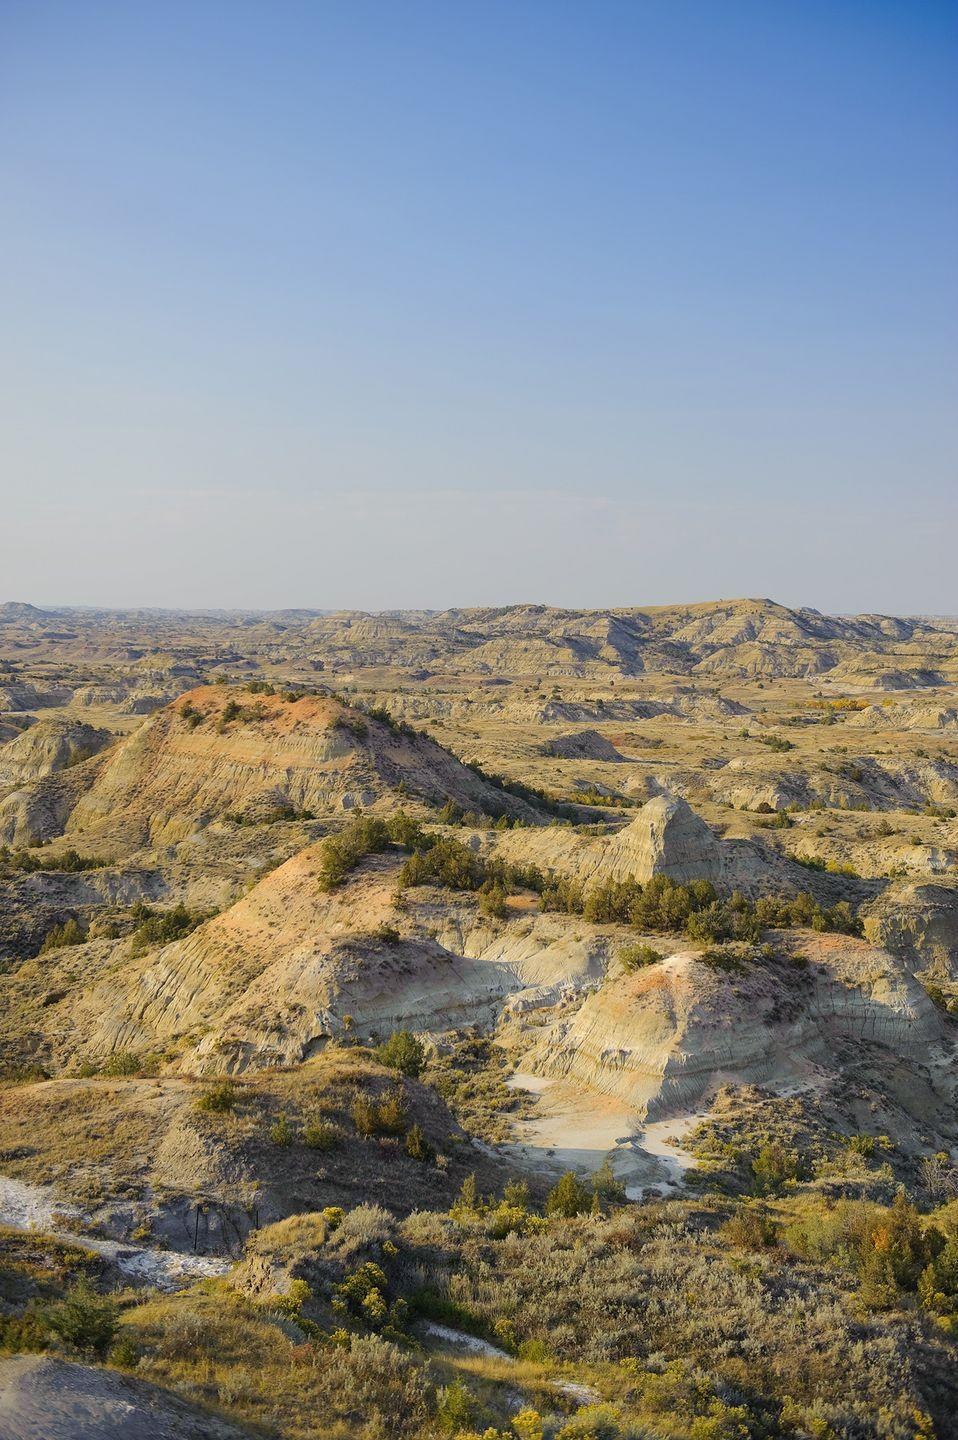 <p><strong>The Drive: </strong>Theodore Roosevelt National Park's South Unit</p><p><strong>The Scene:</strong> In just 36 miles, loop around the south park entrance to take in incredible views of bison, deer, antelopes, and prairie dogs. Your passengers might even spot a bald eagle in the sky! </p><p><strong>The Pit-Stop:</strong> Bring your camera and head for nearby Wind Canyon, one of the most photographed places in the park. </p>